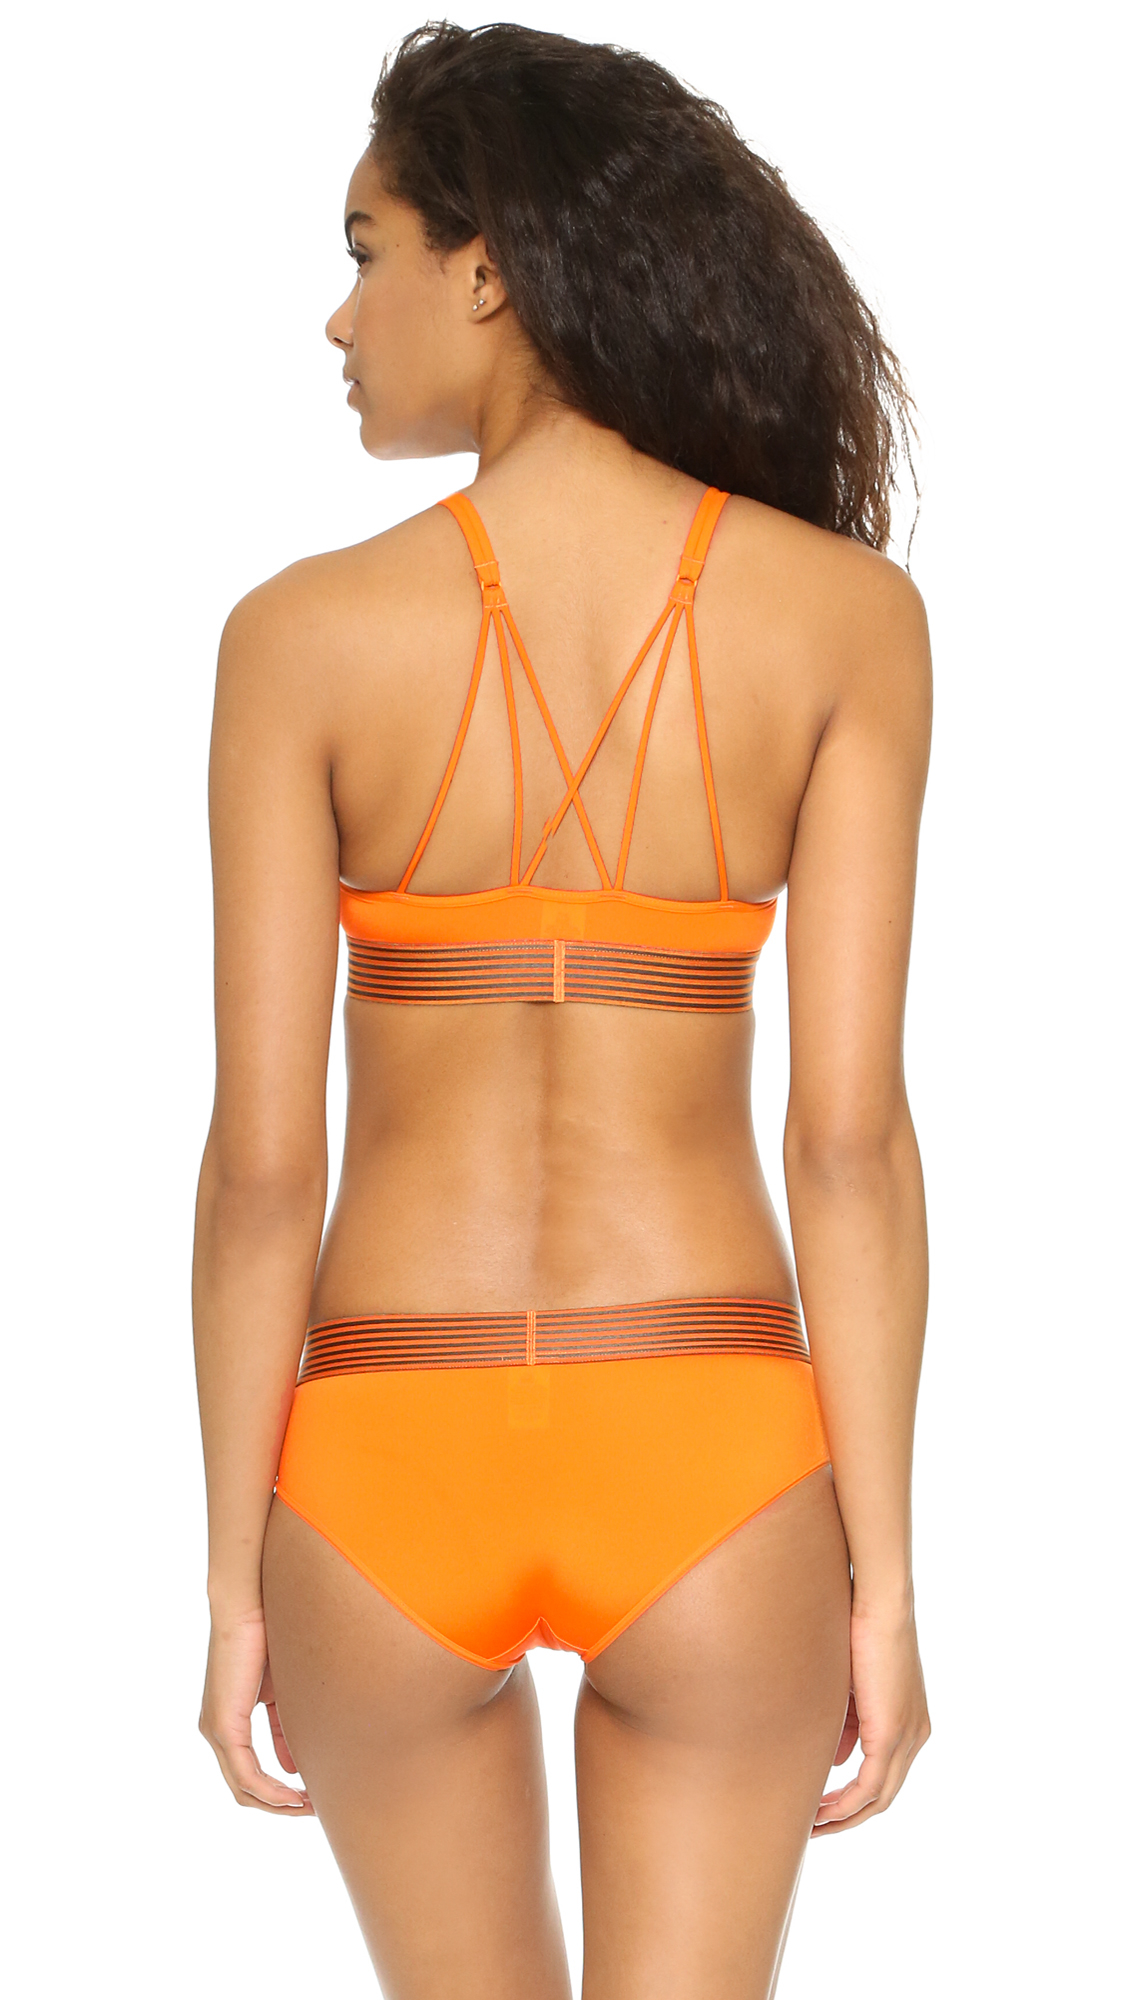 7d56be35d7 Lyst - Calvin Klein Iron Strength Micro Bralette in Orange